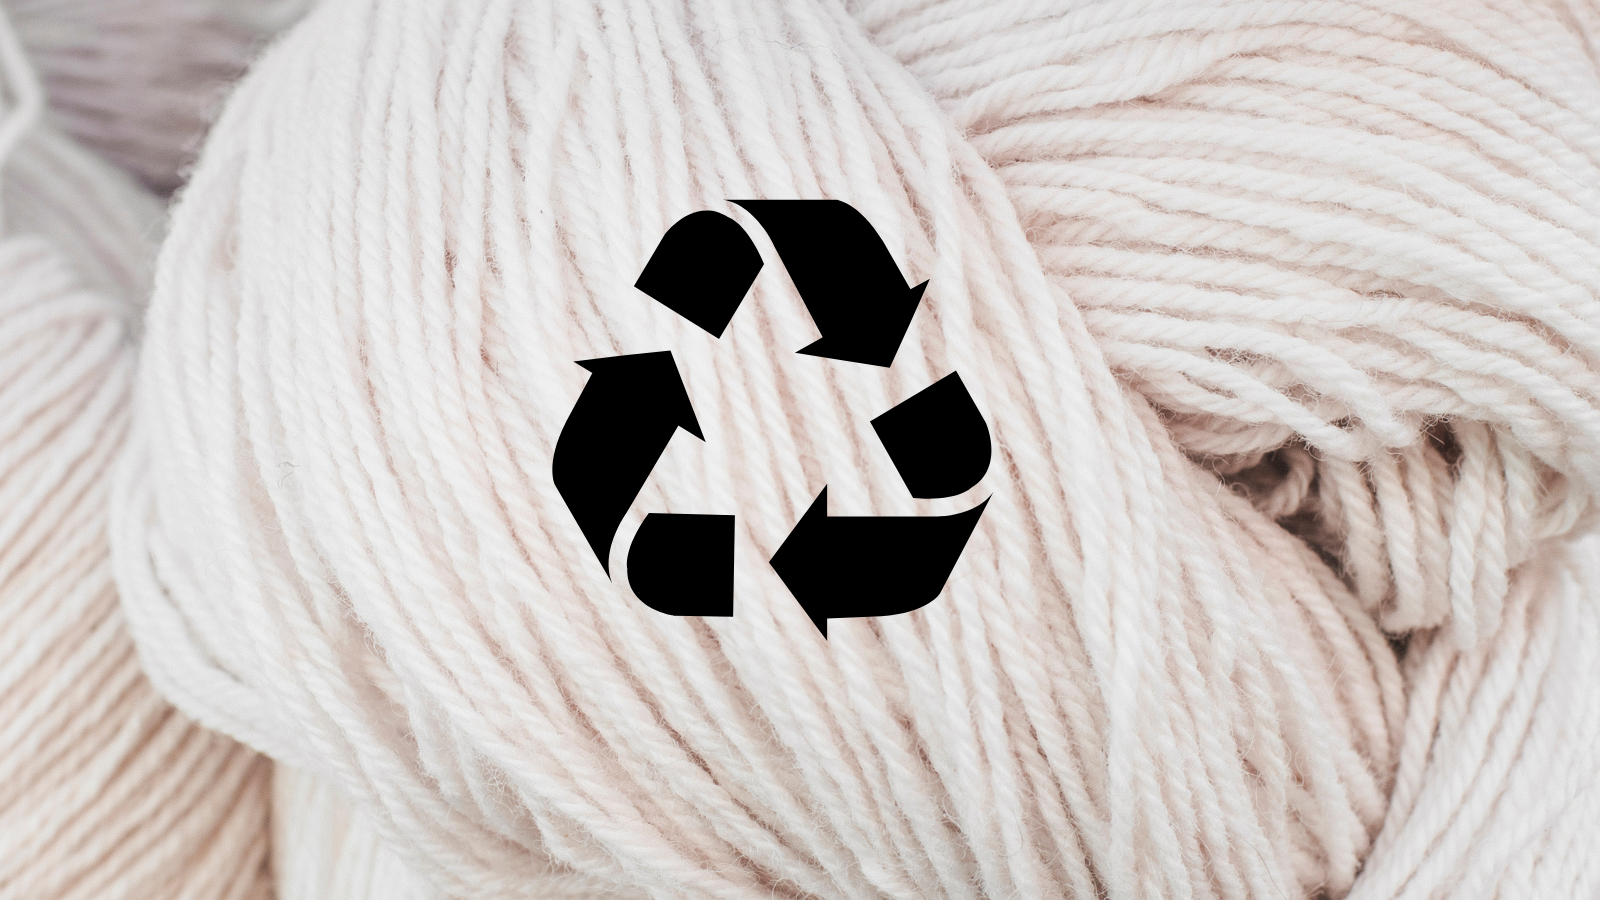 Recycled Cotton is Still an Emerging Fabric